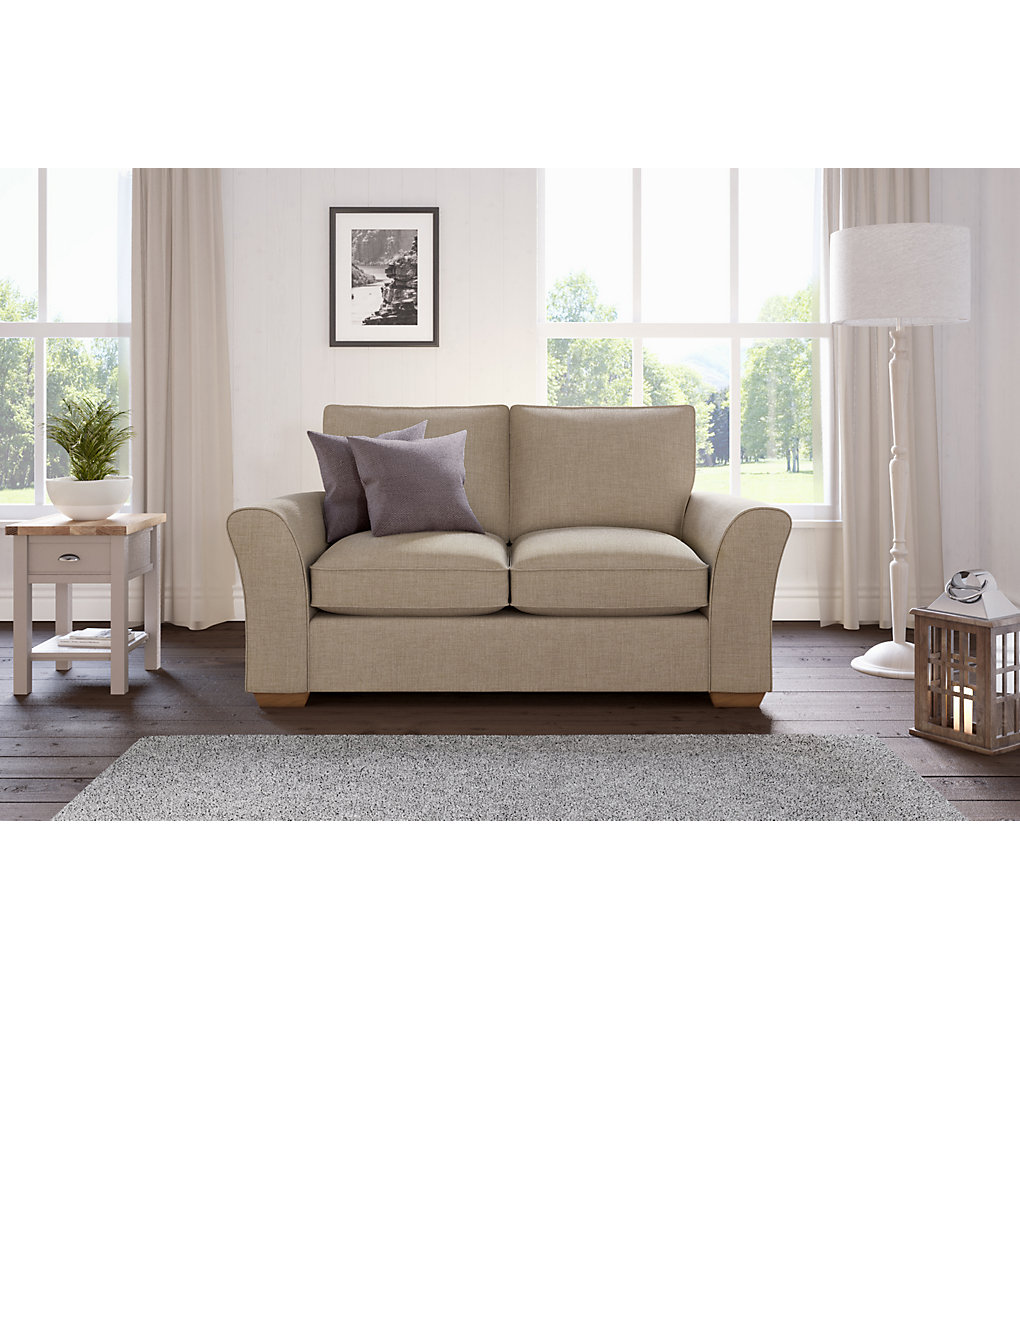 Marks and spencer sofa Tromso corner sofa bed review